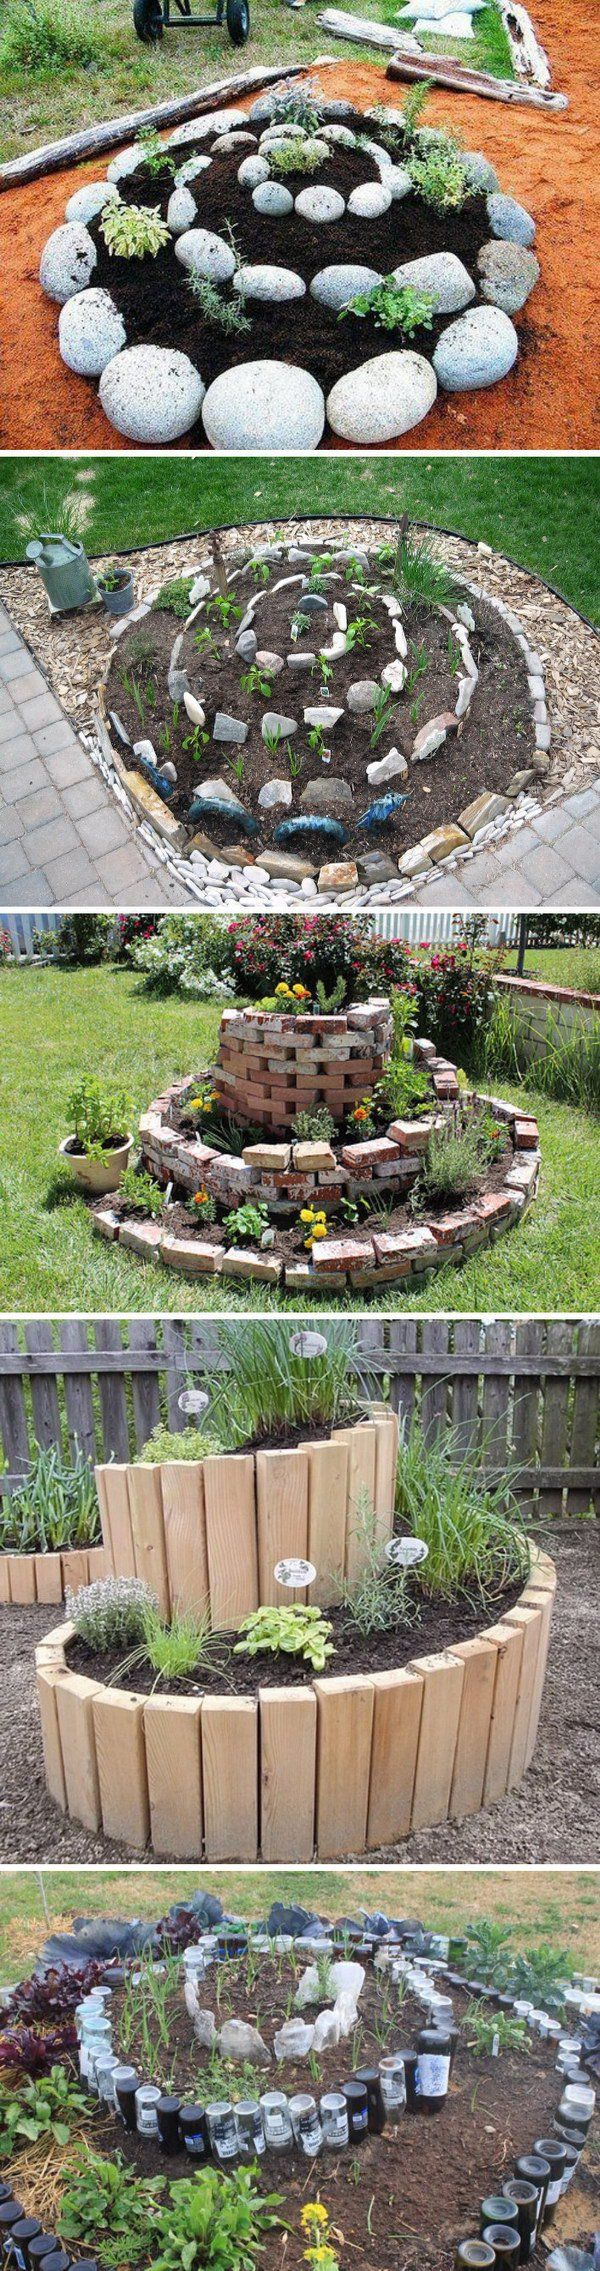 39 best wood fountain images on pinterest garden gardening and